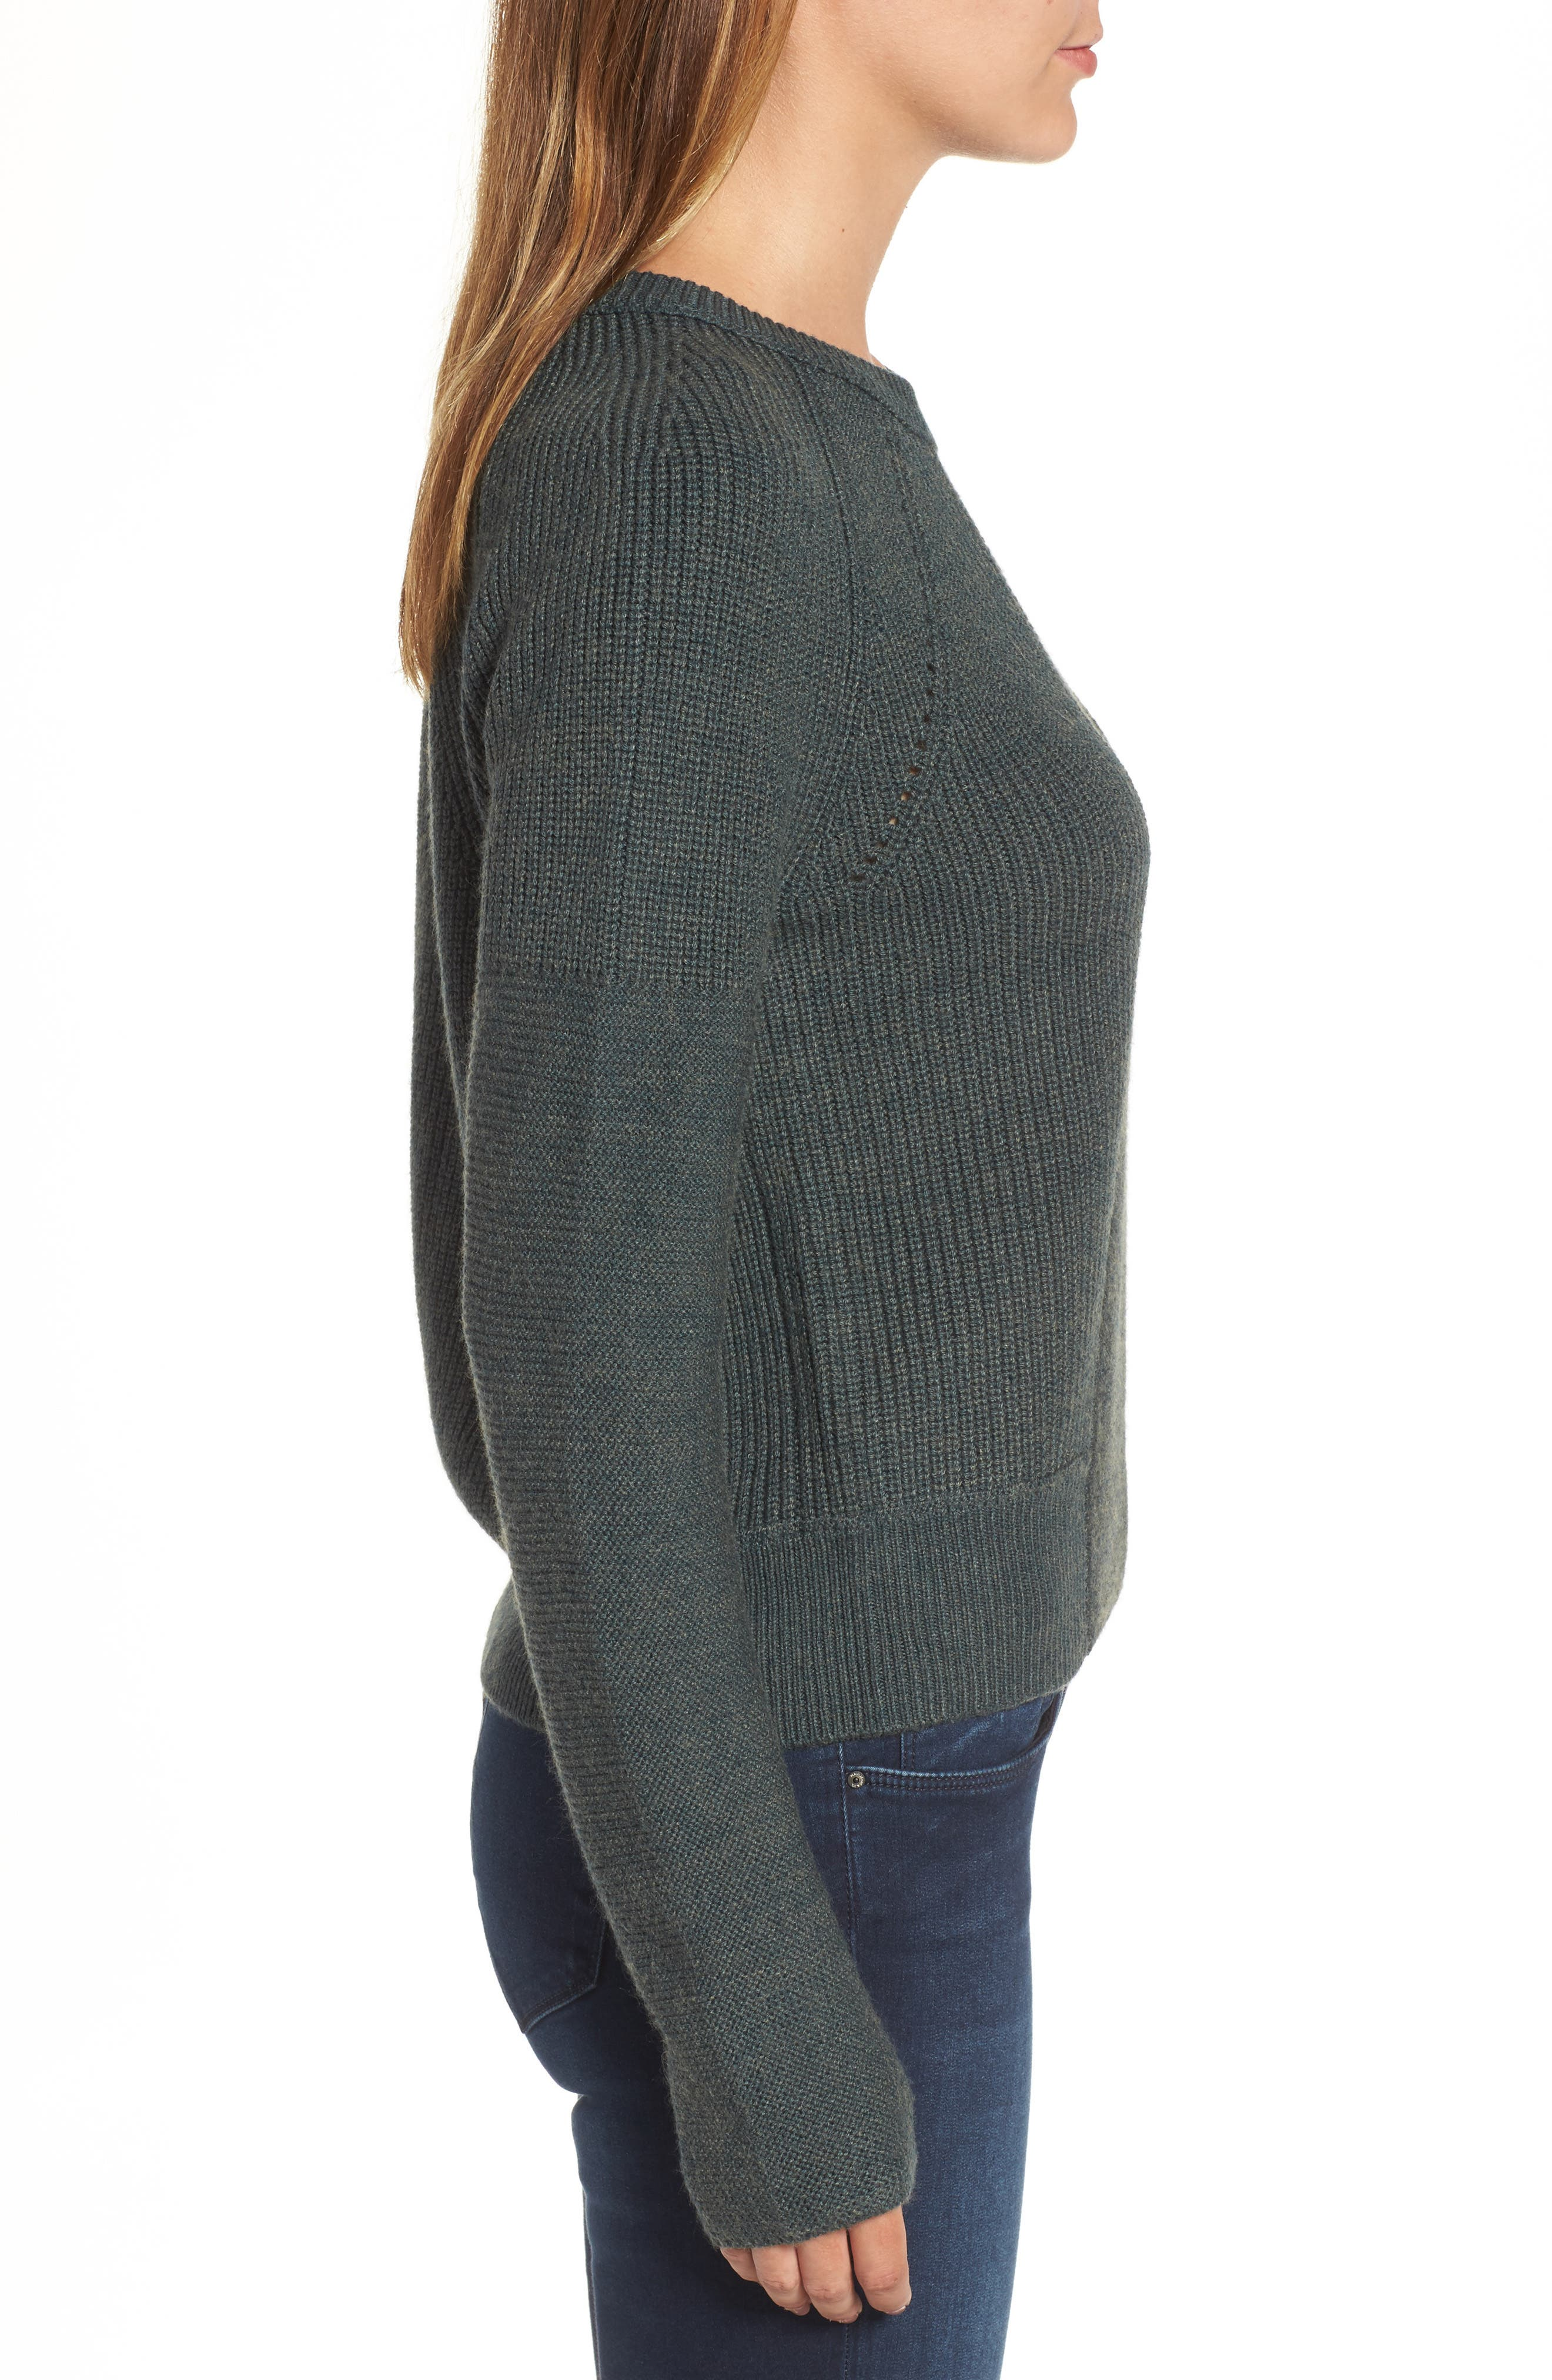 Engineered Stitch Sweater,                             Alternate thumbnail 4, color,                             Military